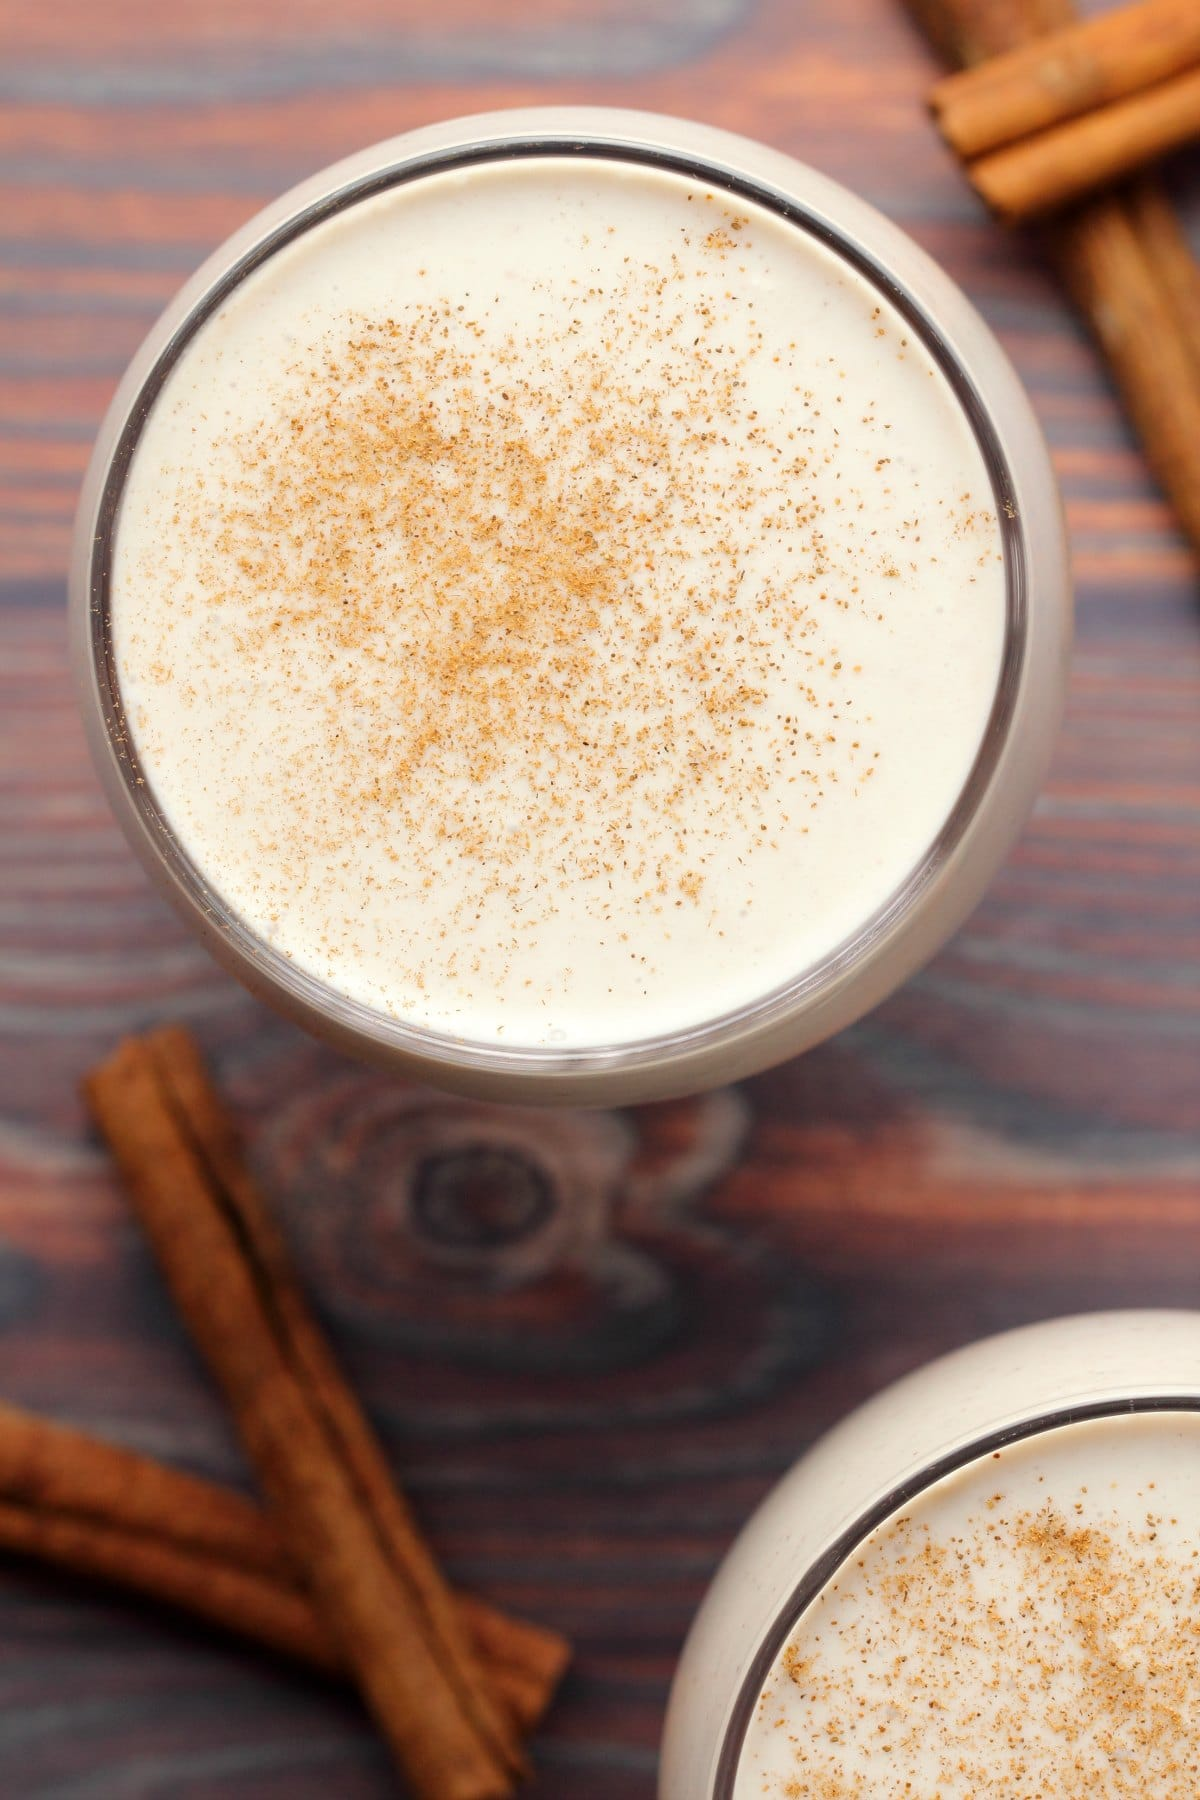 Vegan eggnog topped with a sprinkle of cinnamon in a glass.